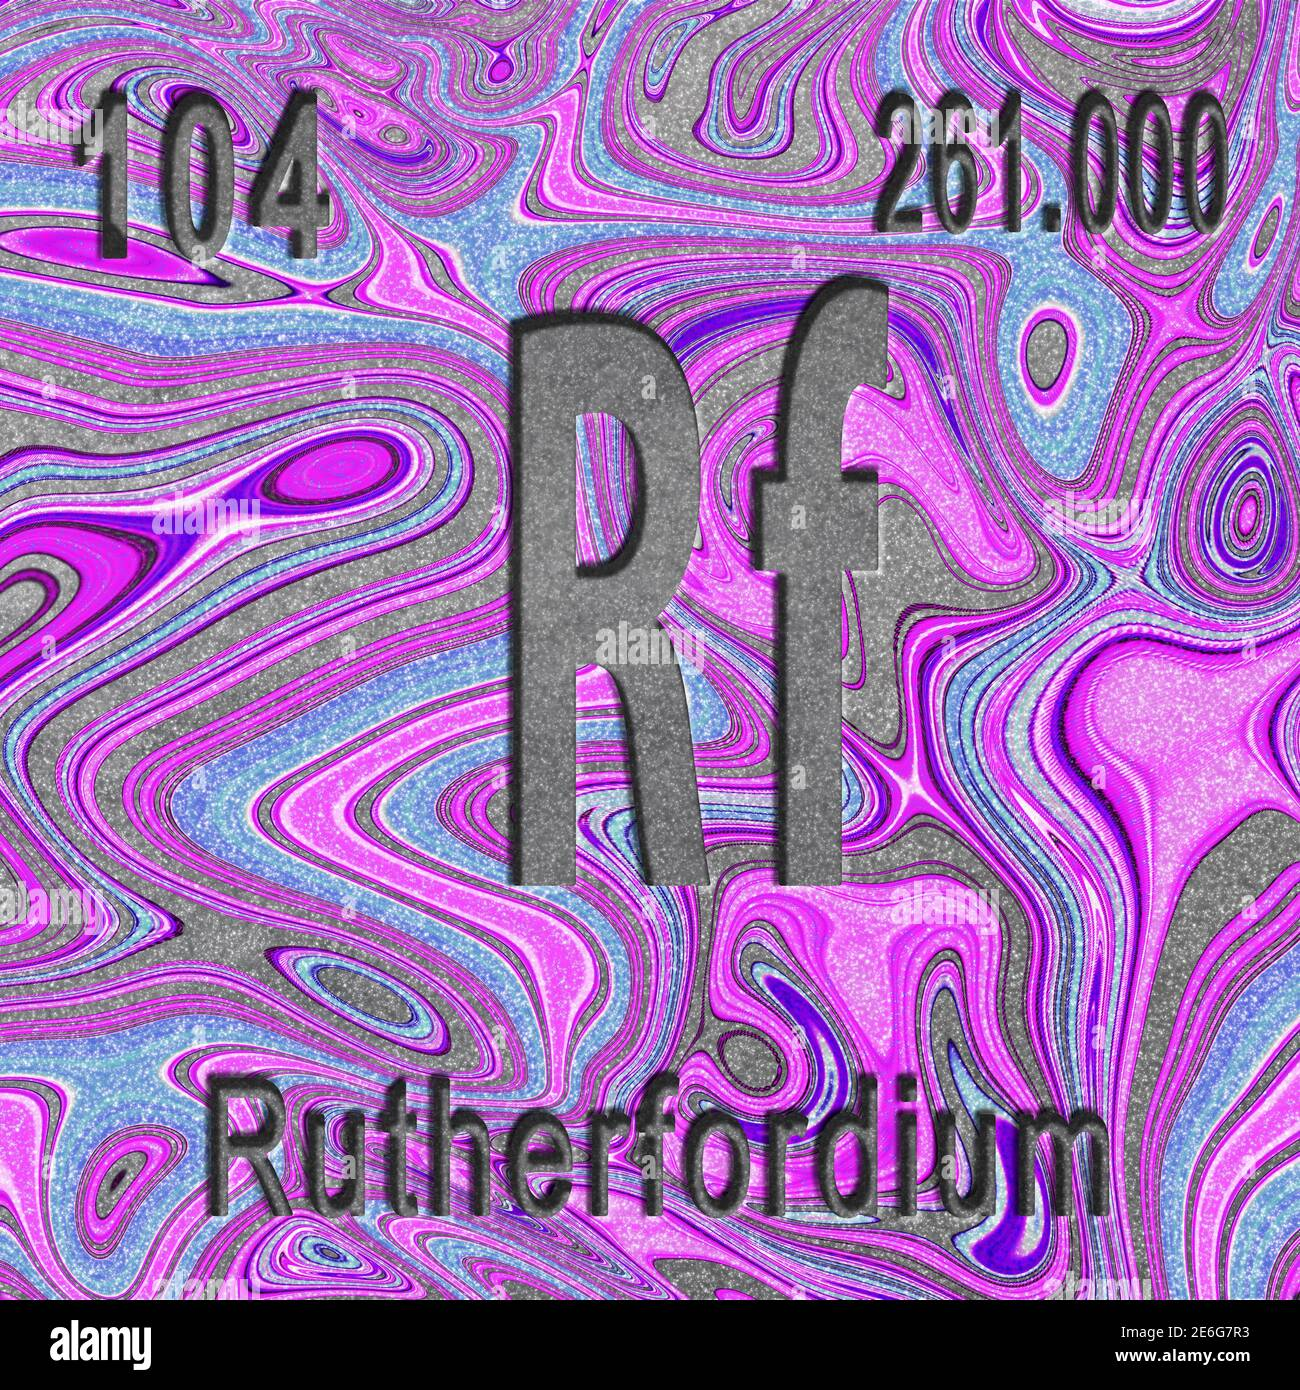 Rutherfordium chemical element, Sign with atomic number and atomic weight, purple background, Periodic Table Element Stock Photo